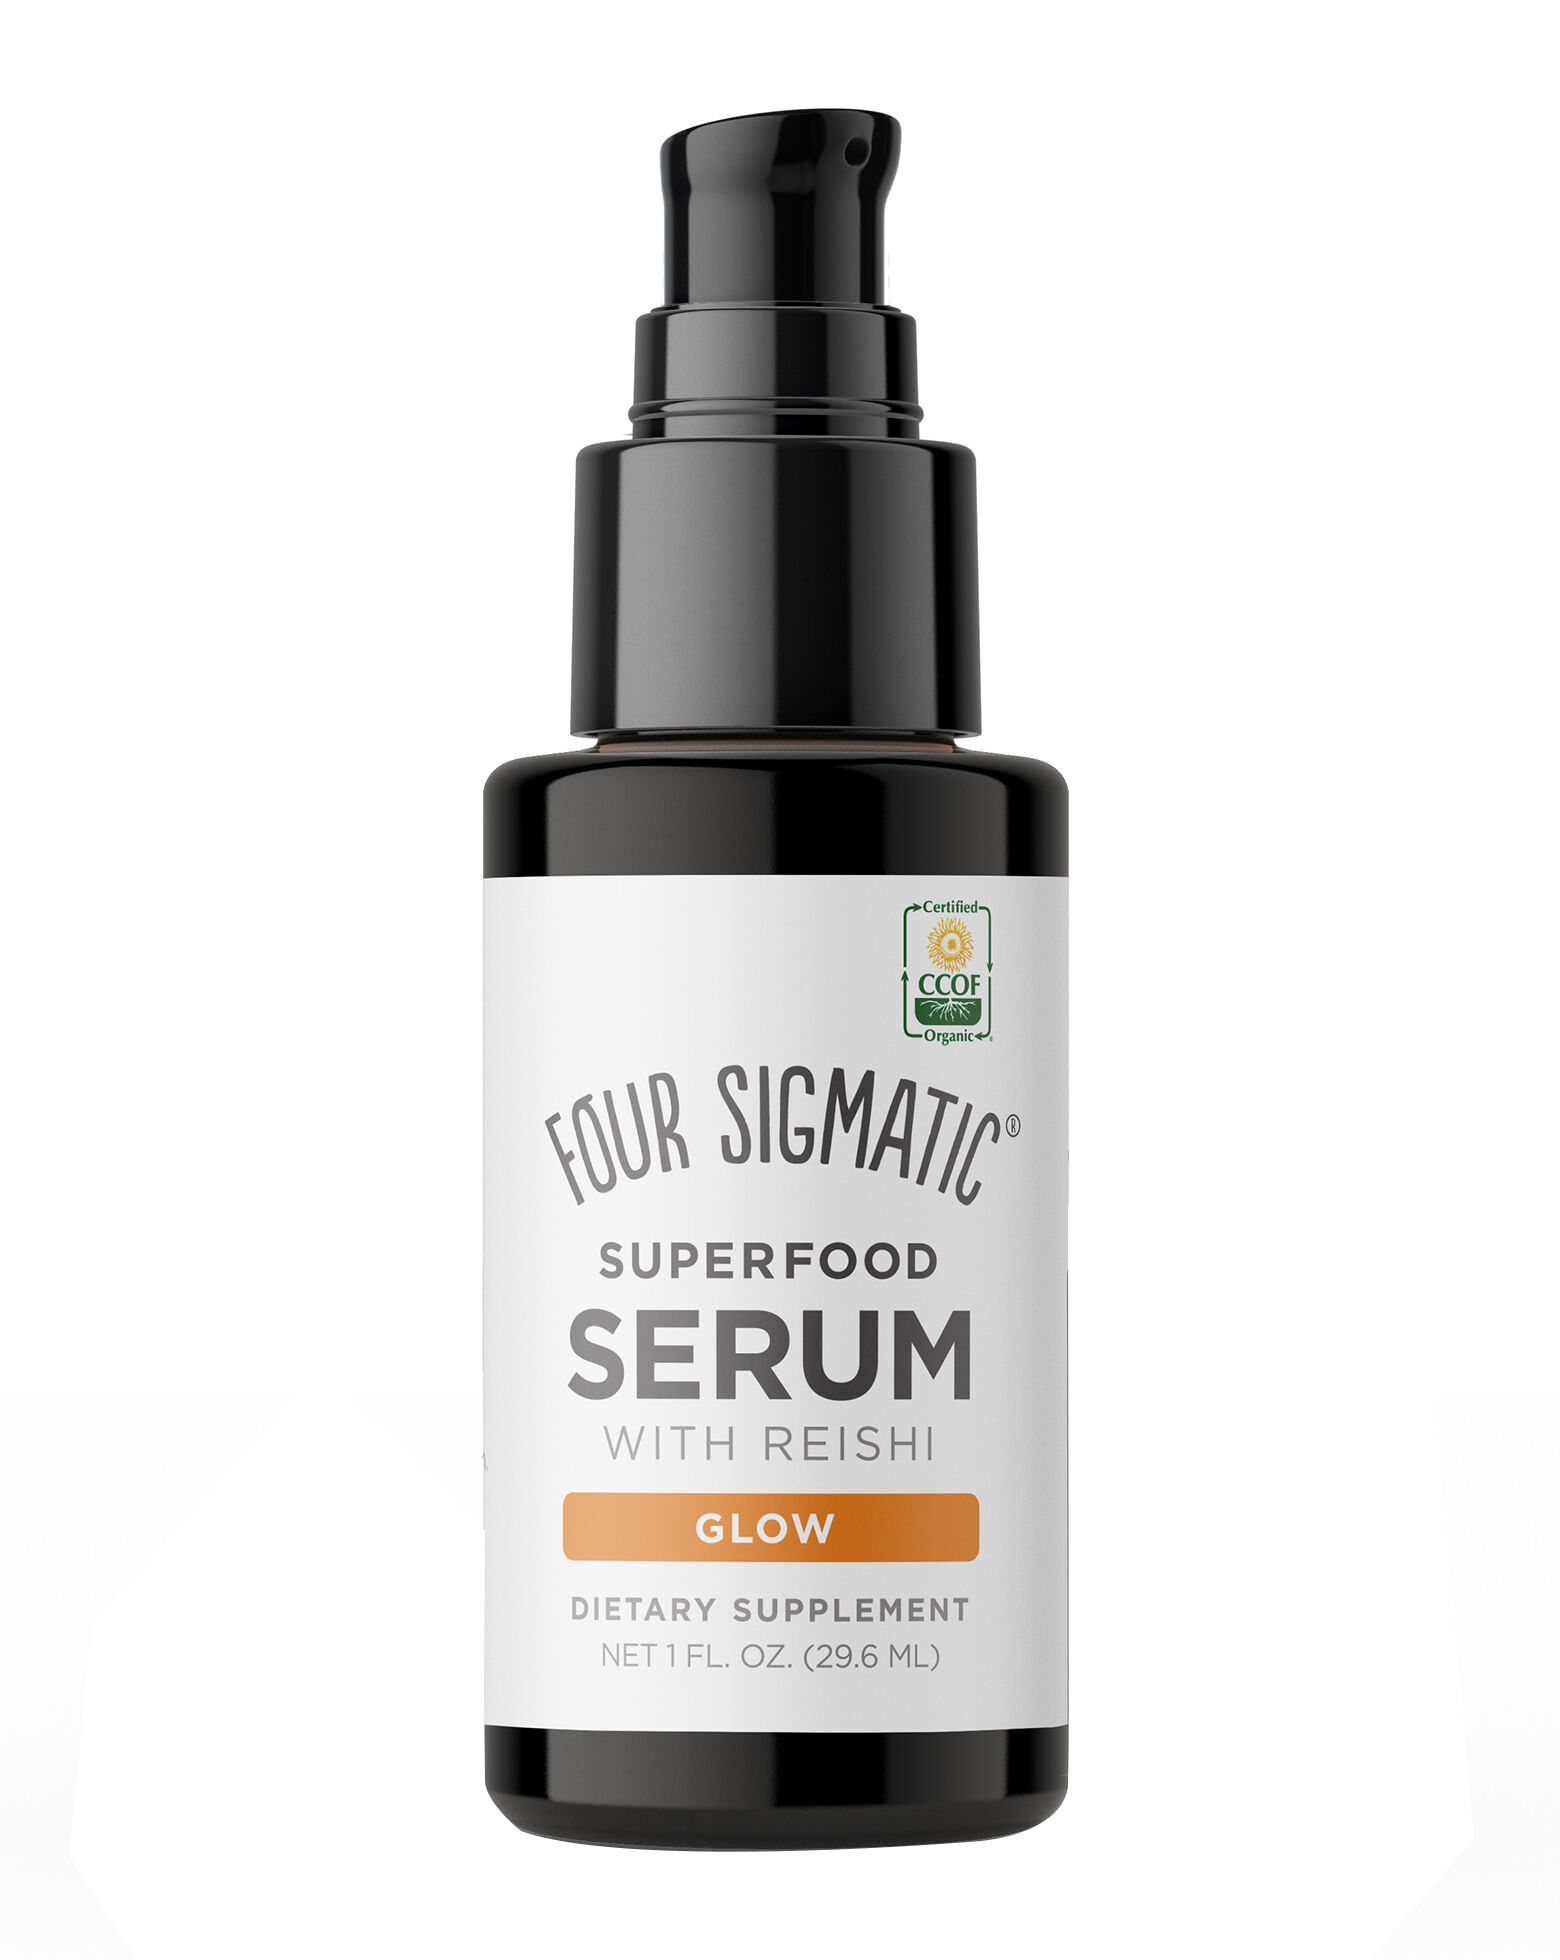 Four Sigmatic - Superfood Serum With Reishi